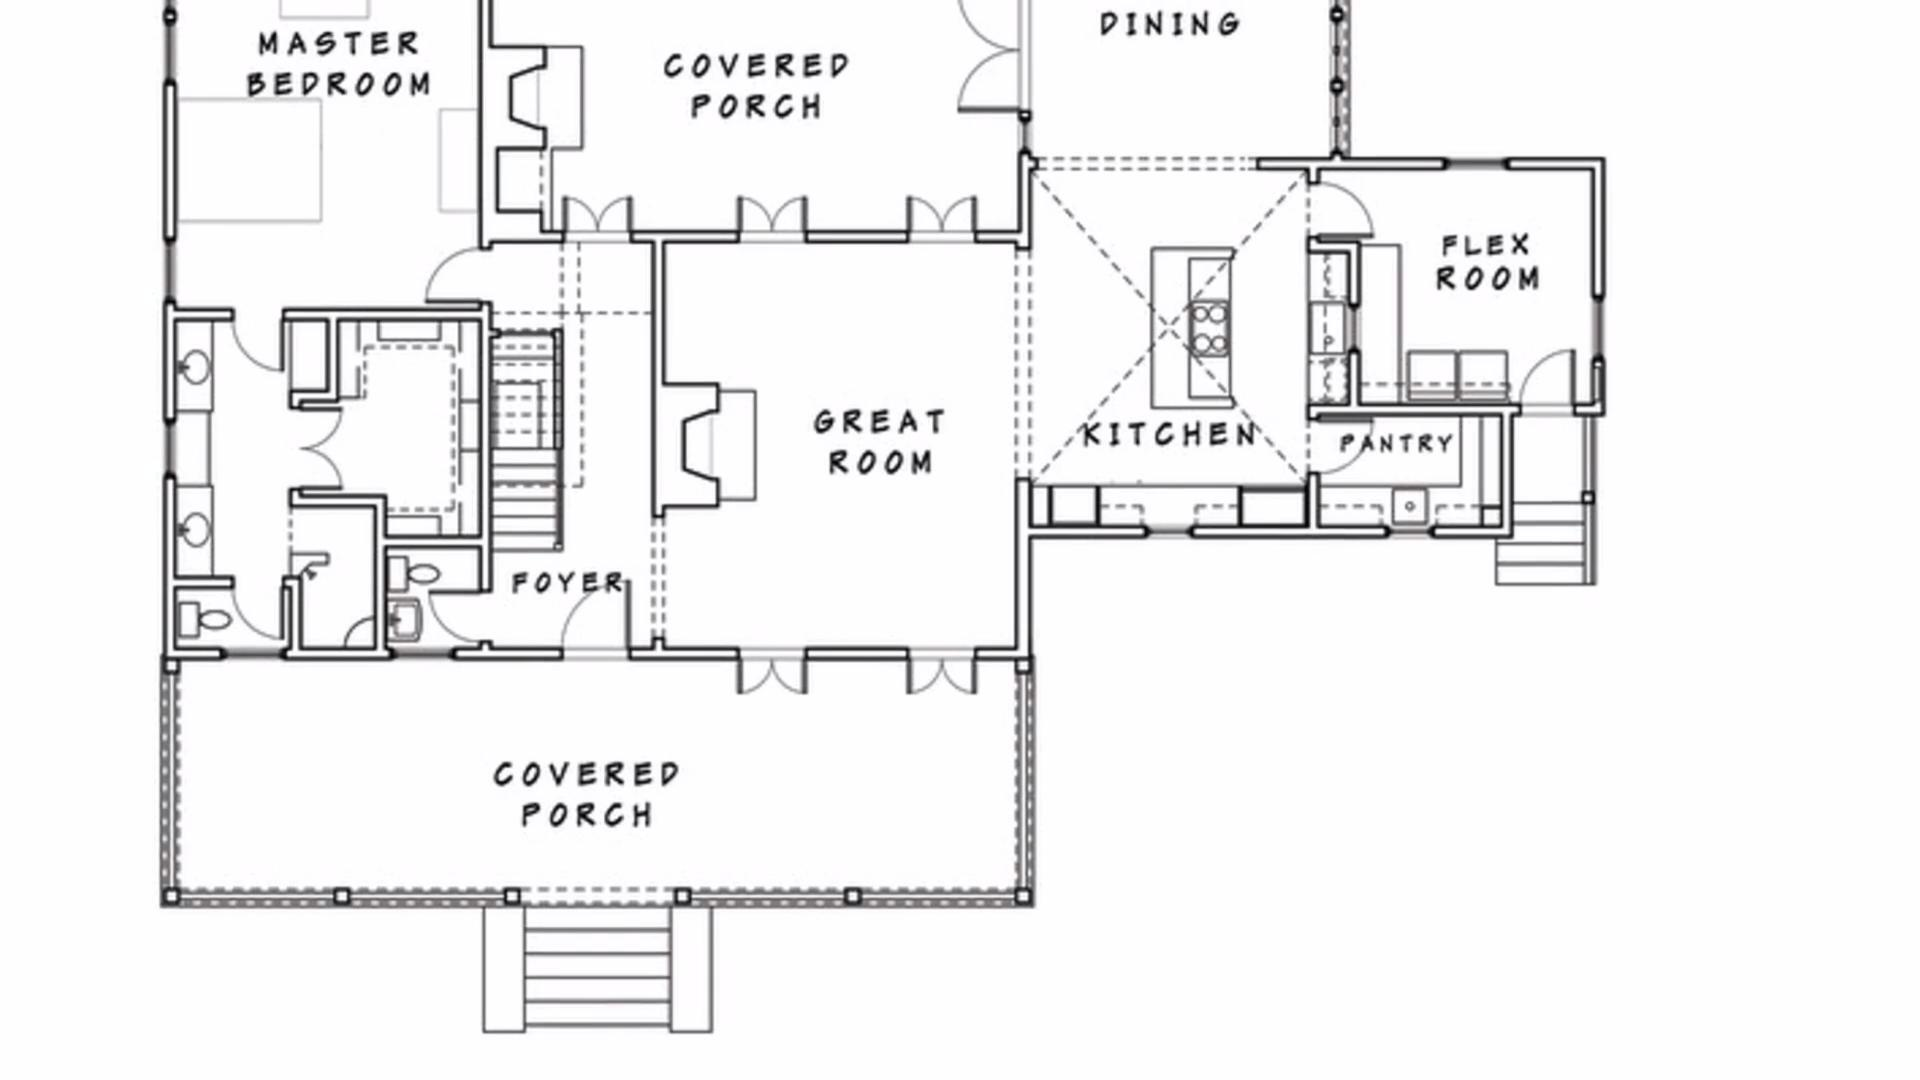 There are Some Drawbacks to Open Floor Plans